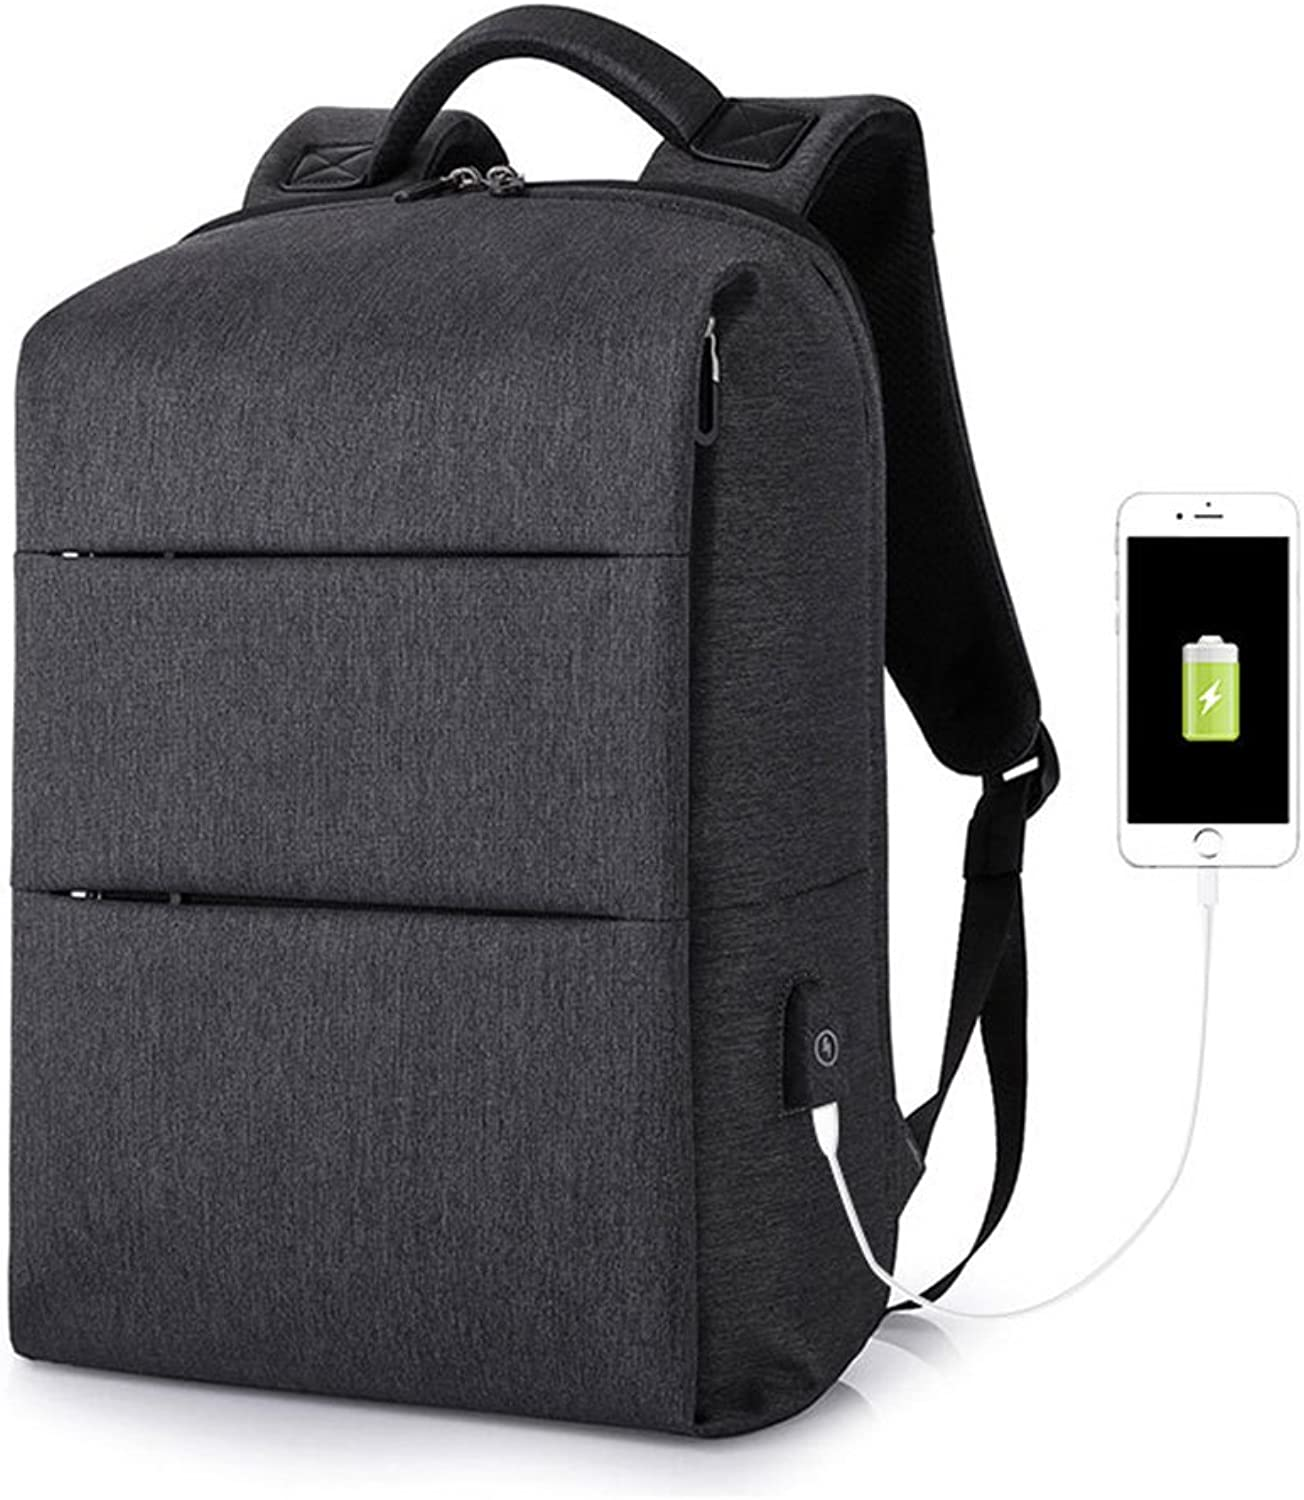 MIMI KING Business Backpack Laptop Lightweight With USB Charging Port Box Type For Men Traveling Bag